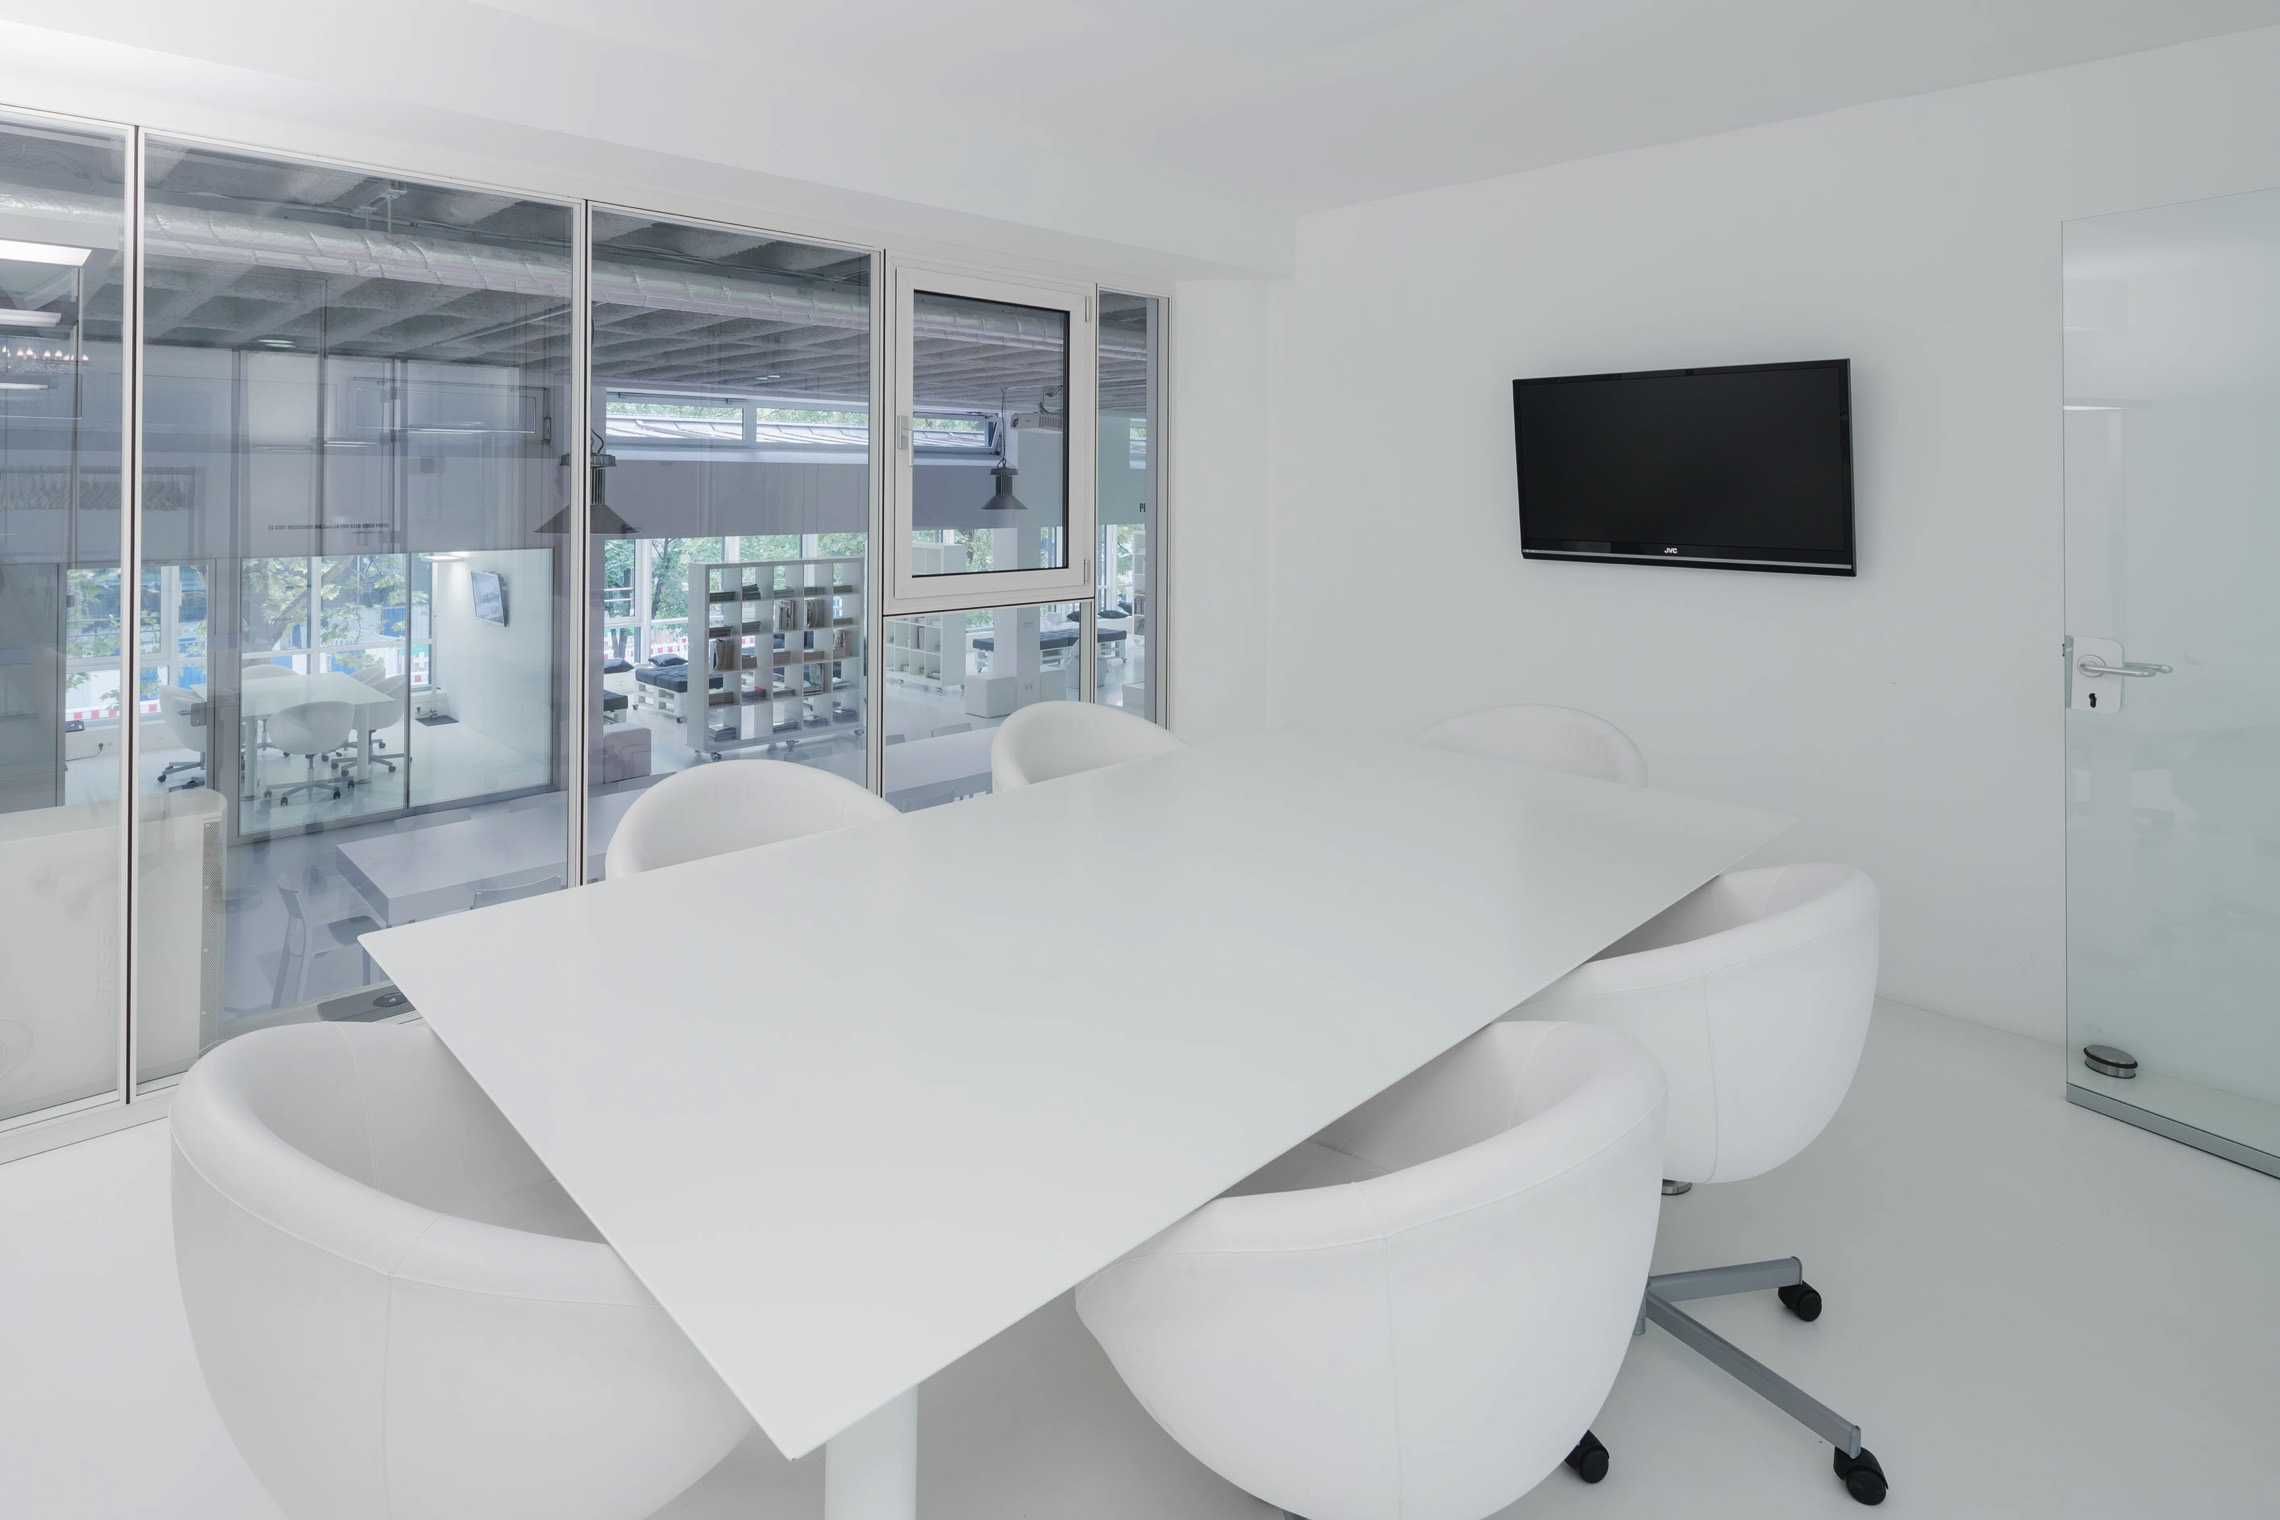 The Open Interior Design Promotes Productivity And A Glass Wall Allows A  View Over The Urban Offices.